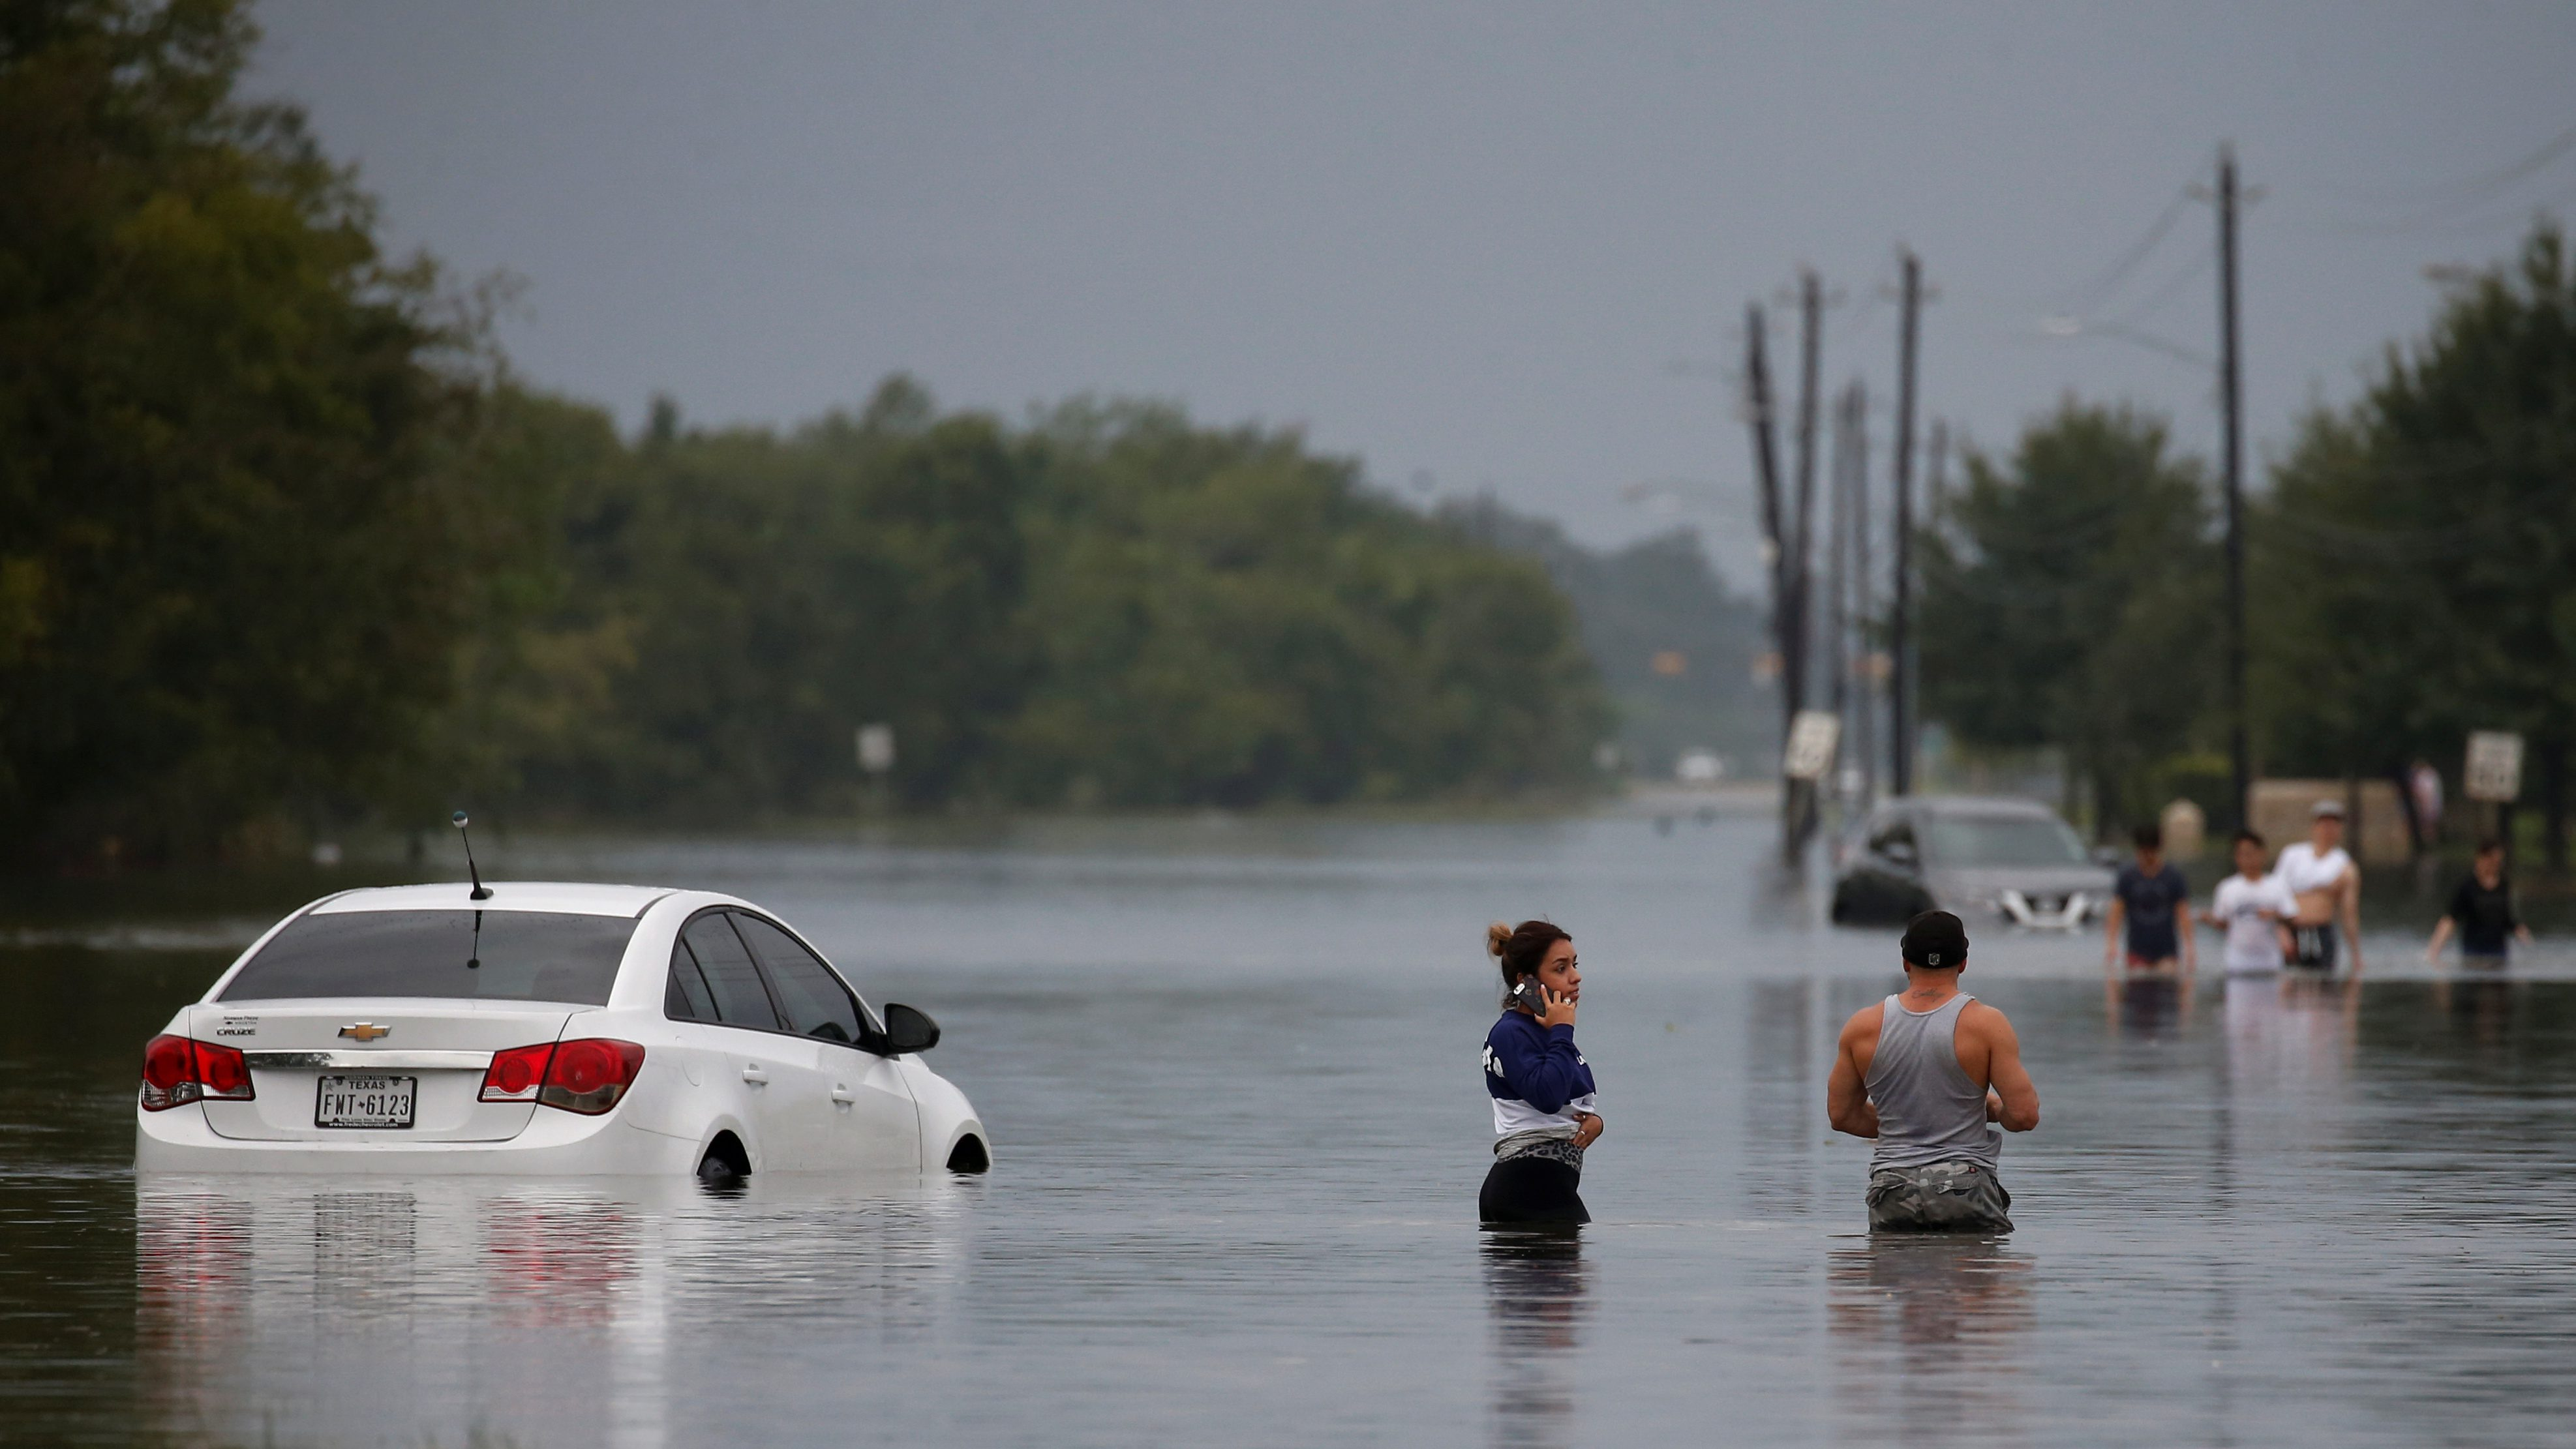 Residents wade through flood waters from Tropical Storm Harvey in Houston, Texas, U.S. August 27, 2017.